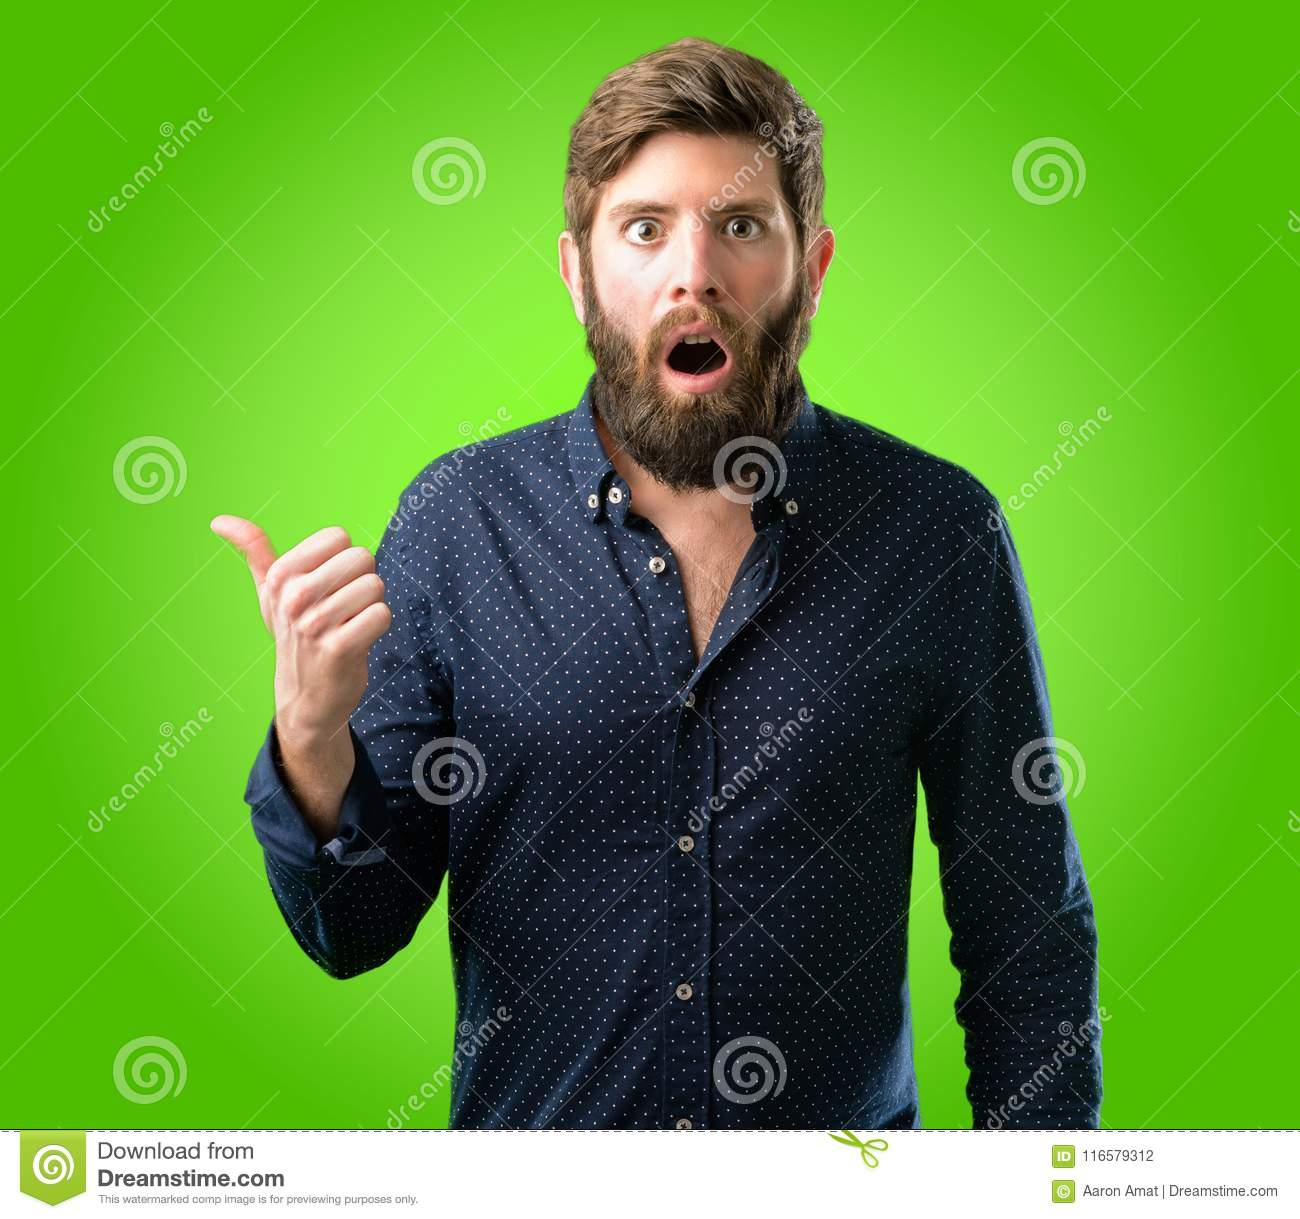 Young hipster man with beard and shirt